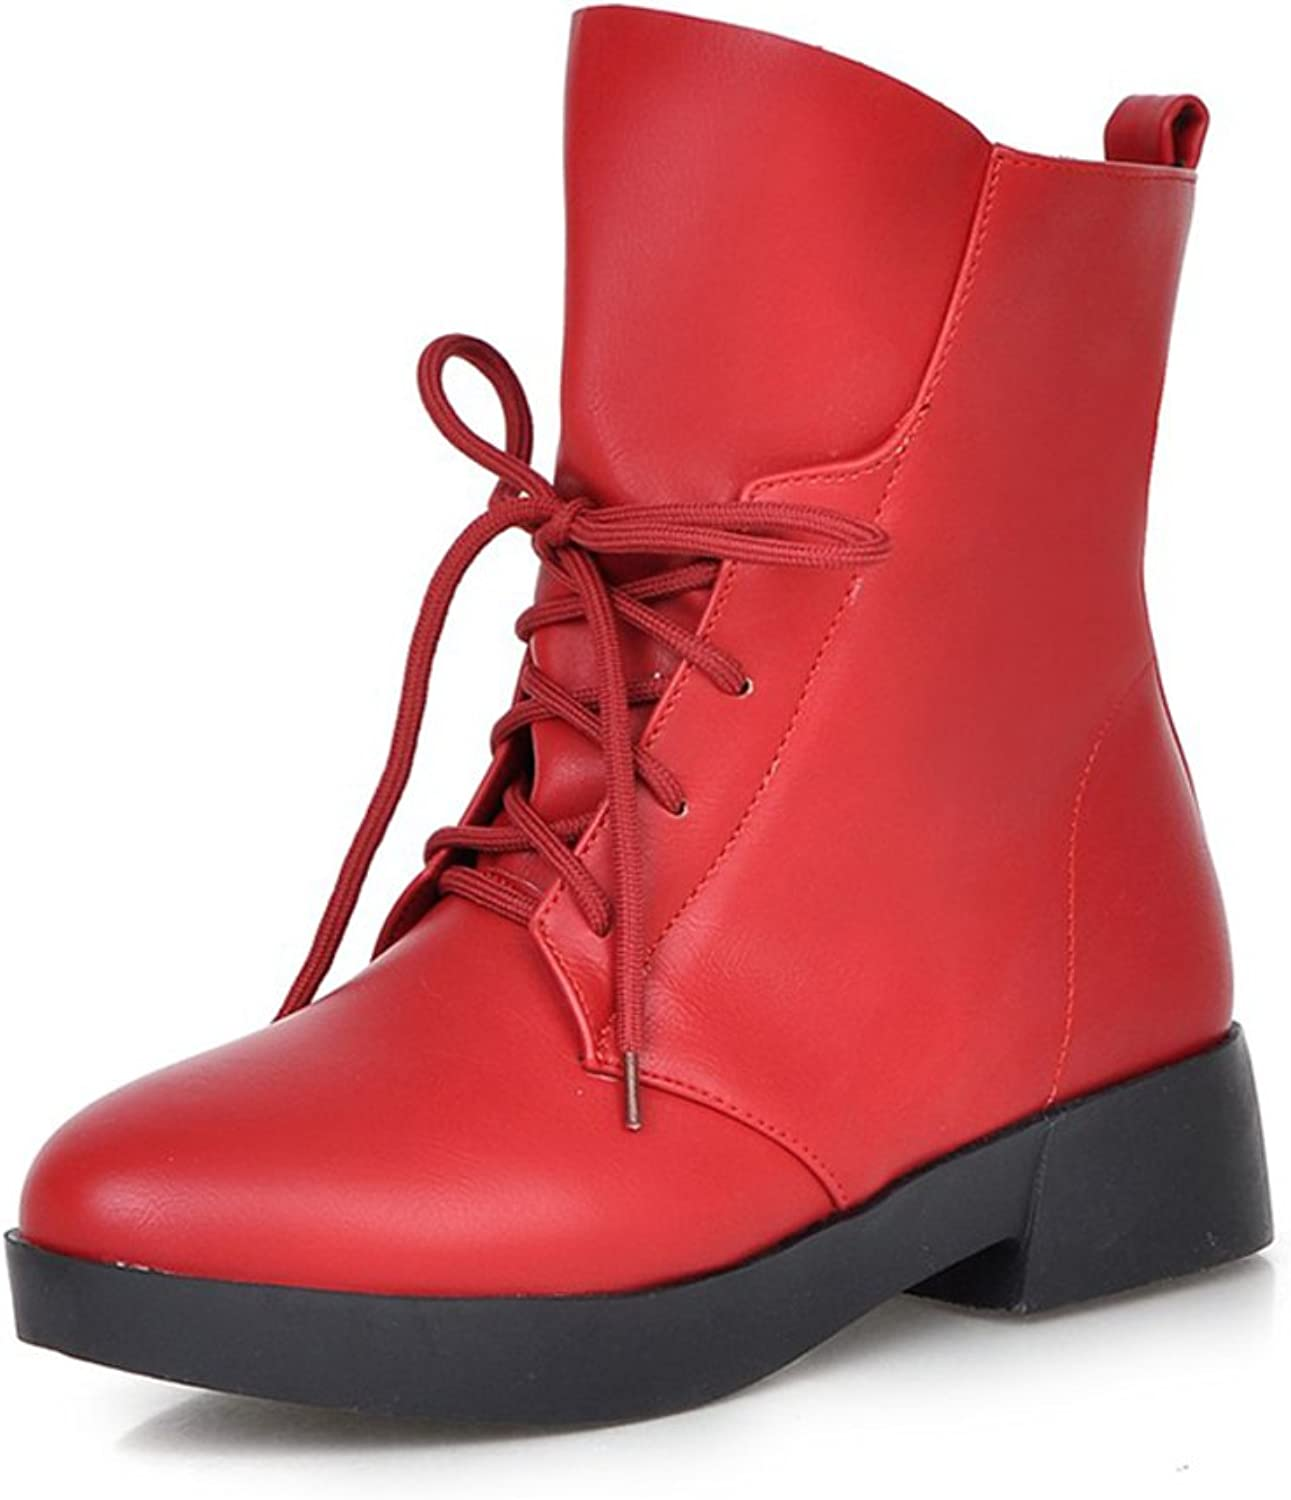 RHFDVGDS leisure Martin boots Ladies with round head in boots autumn and winter boots warm students